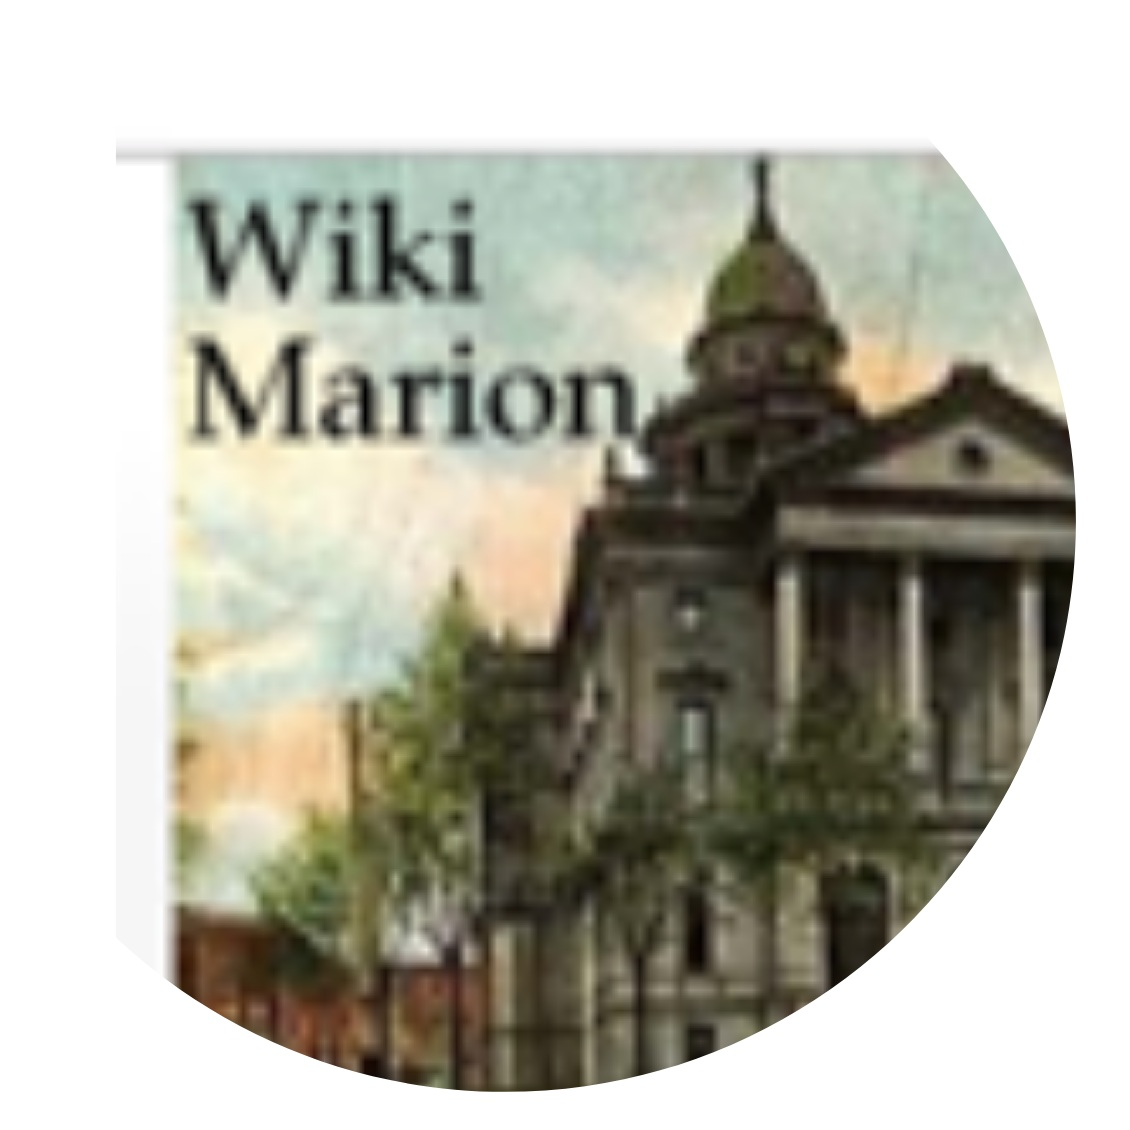 Wiki Marion - a site devoted to the history of Marion, Indiana and surrounding areas.